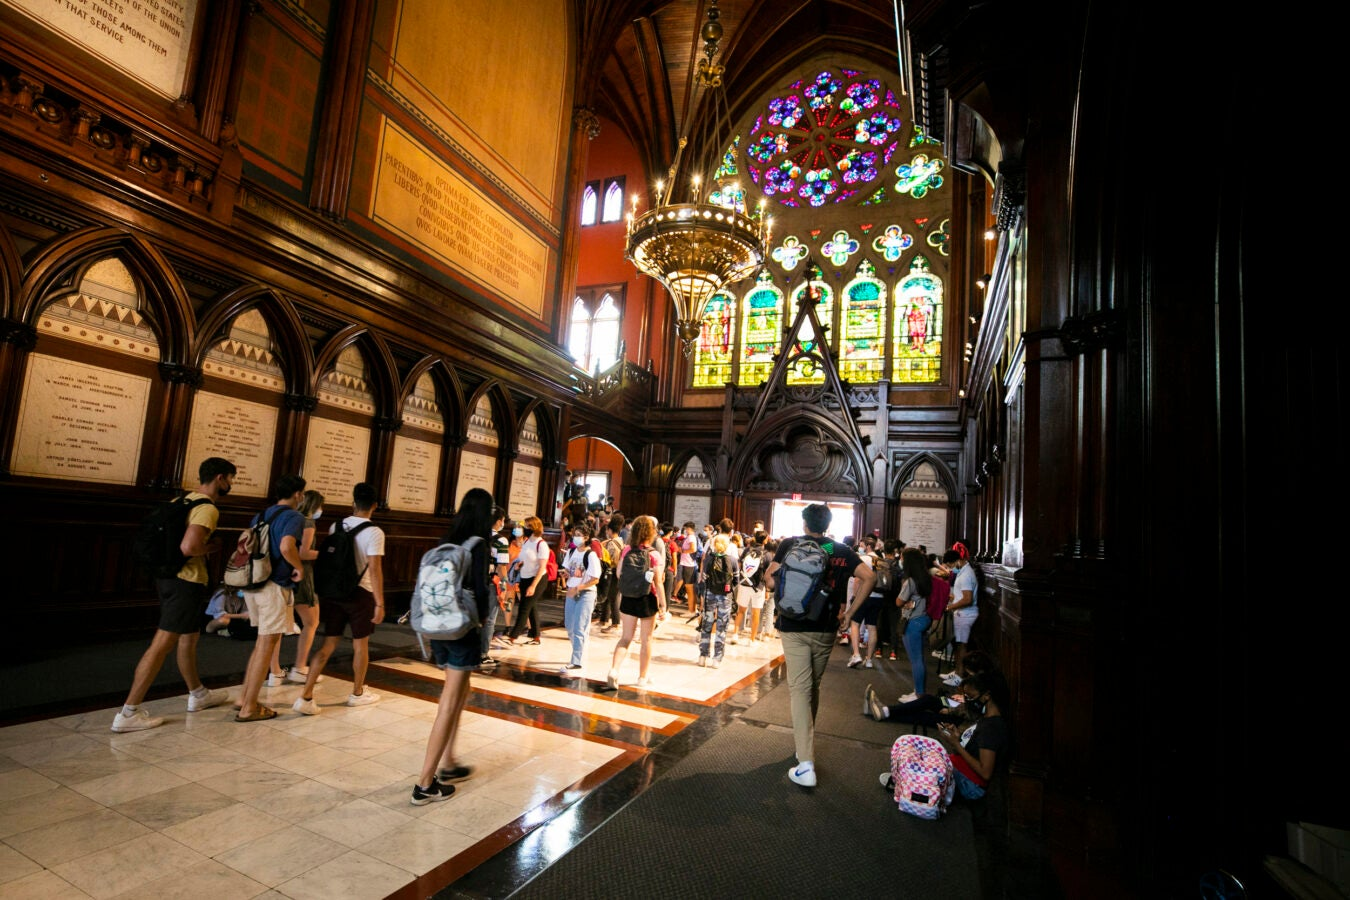 Students gather in the transept before heading into the lecture.